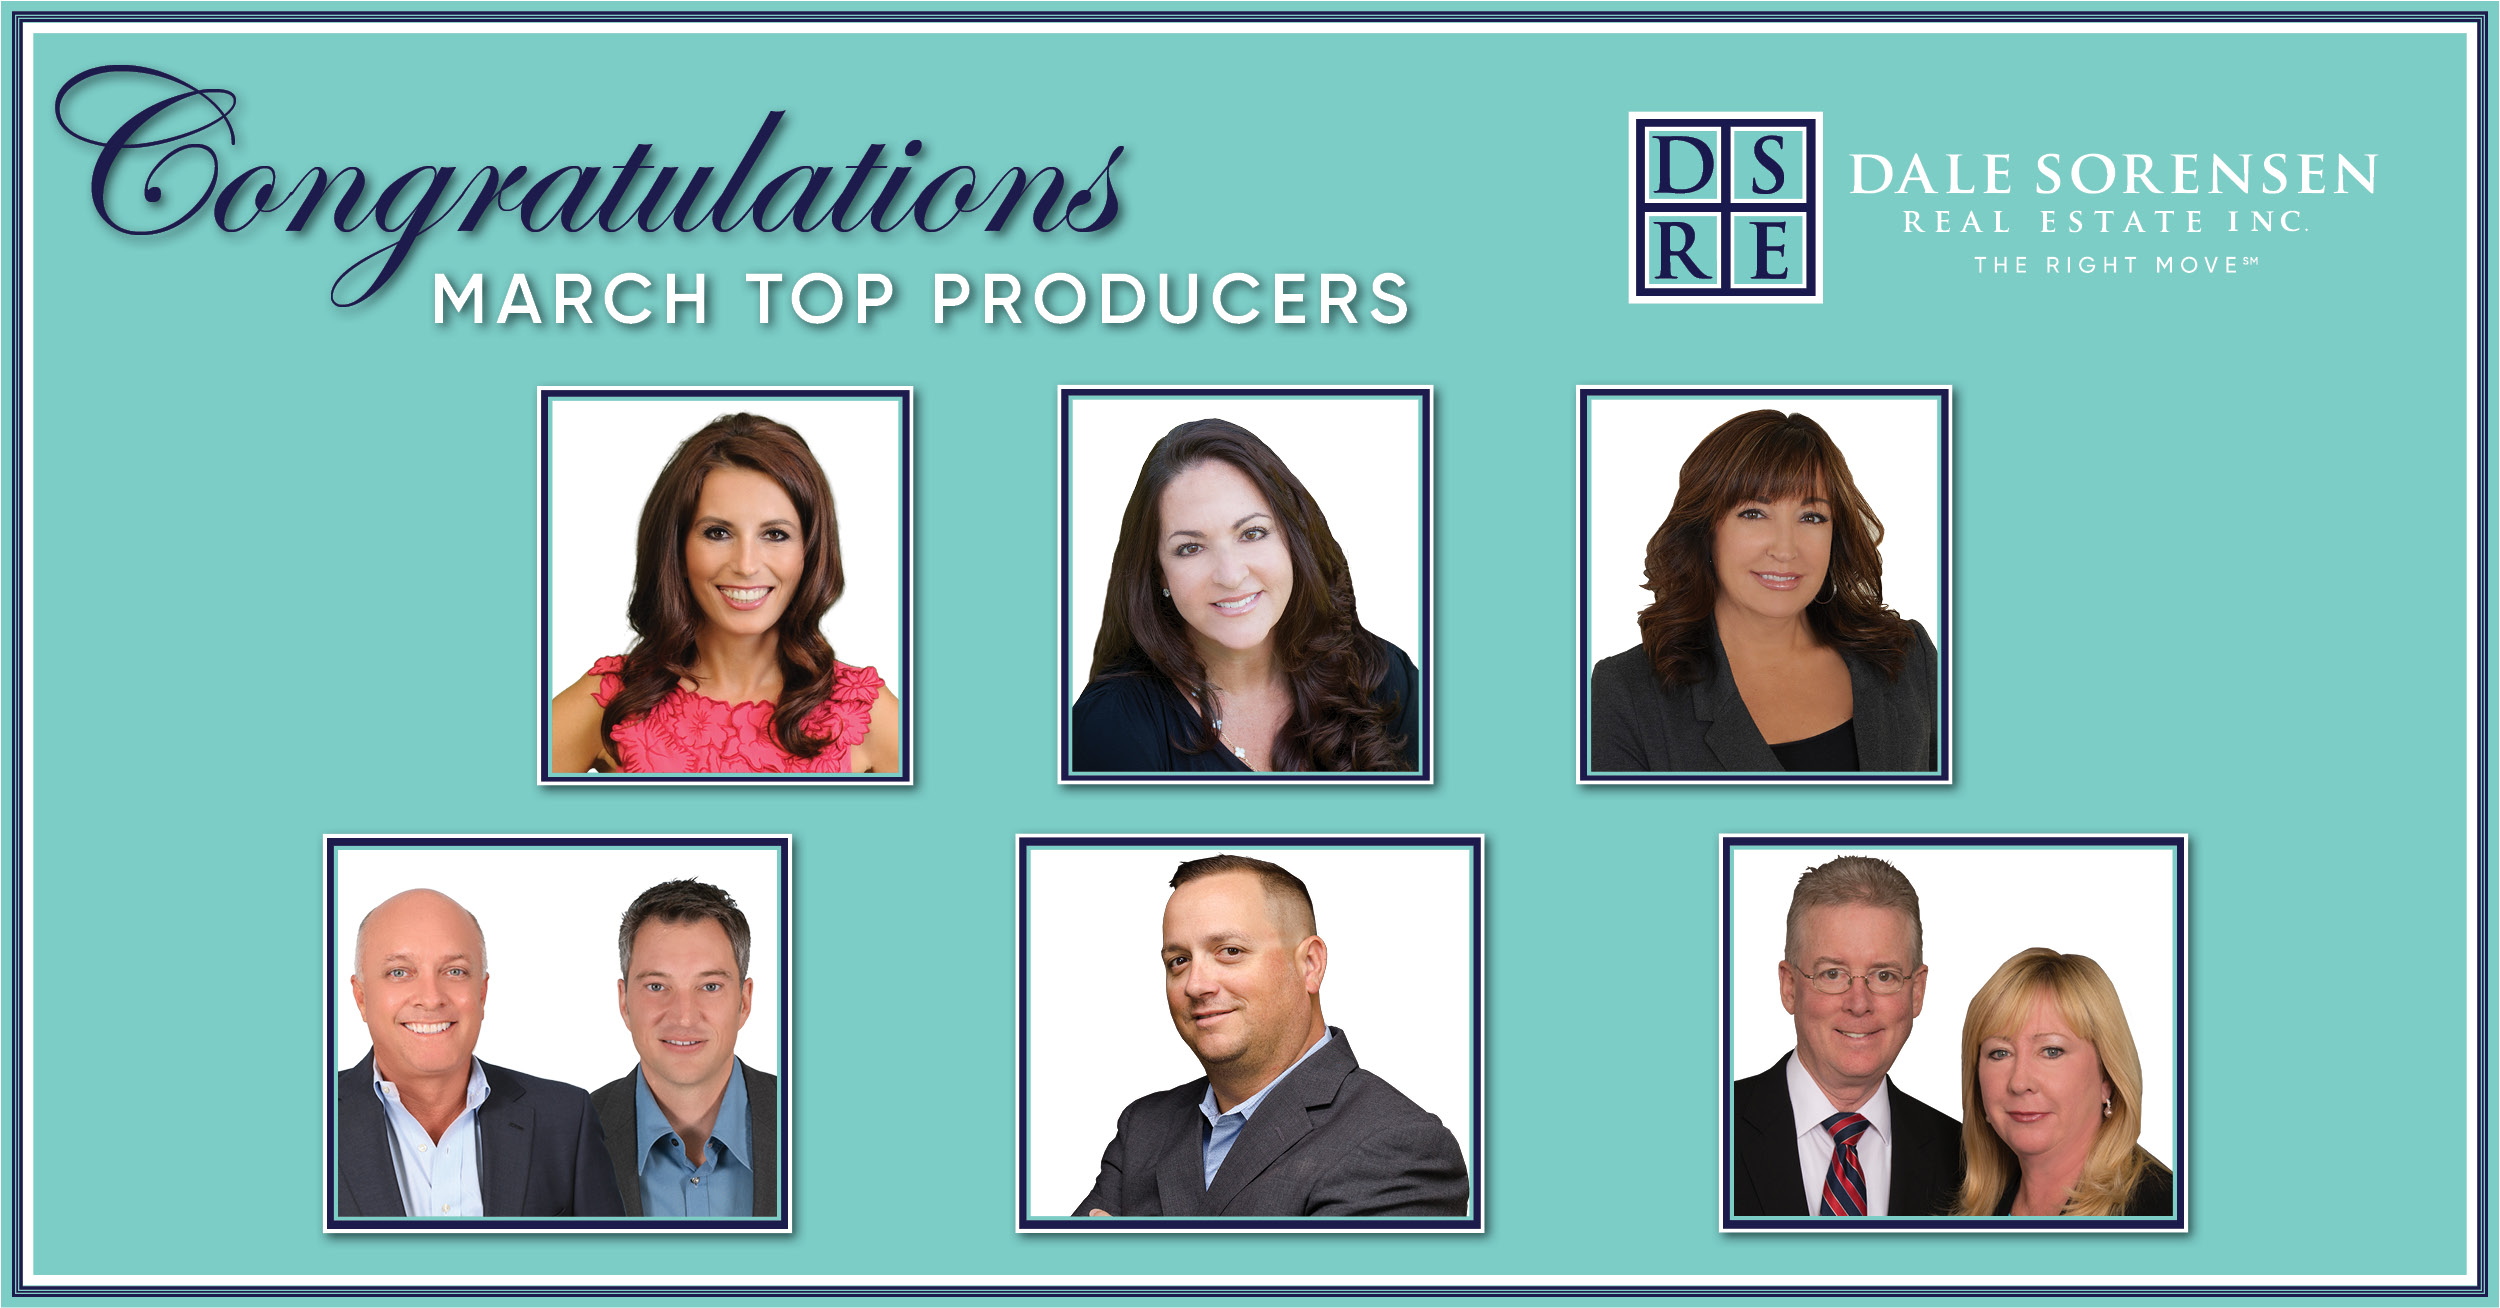 Congratulations March Top Producers DSRE Dale Sorensen Real Estate Inc. THE RIGHT MOVE